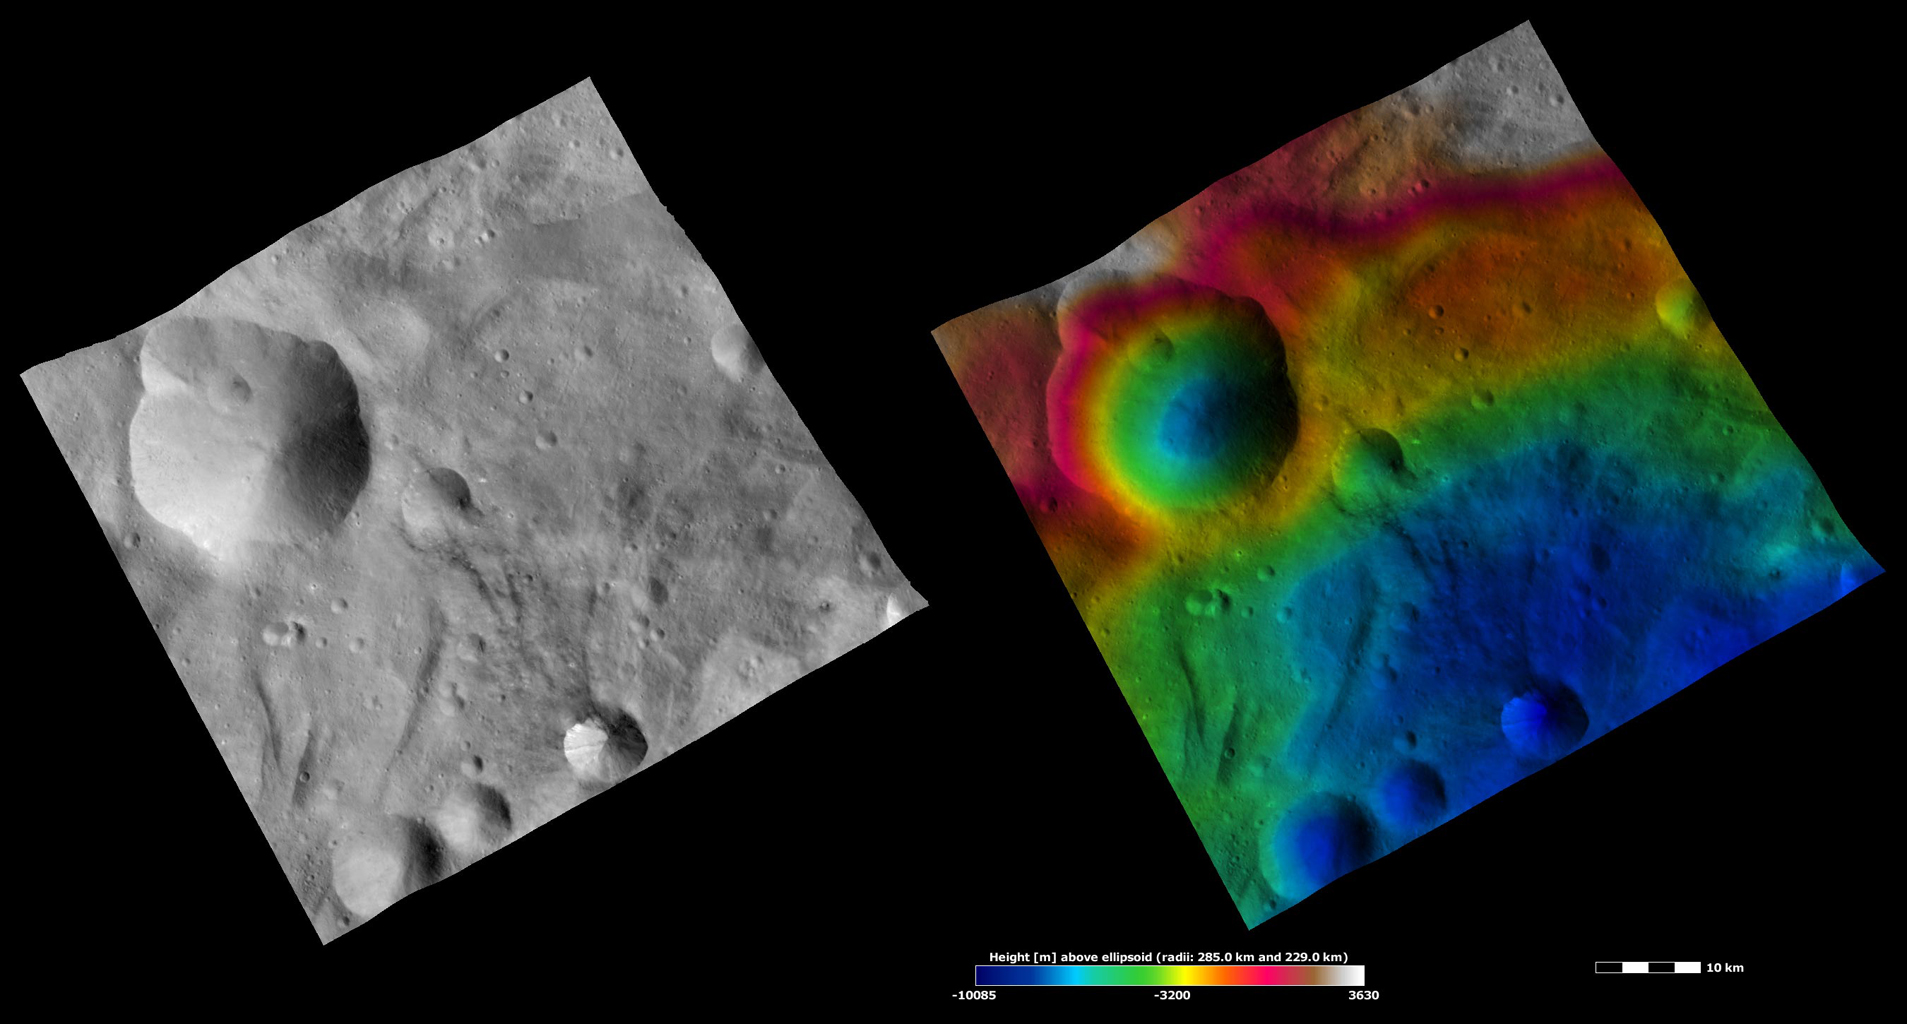 Apparent Brightness and Topography Images of Urbinia and Sossia Craters